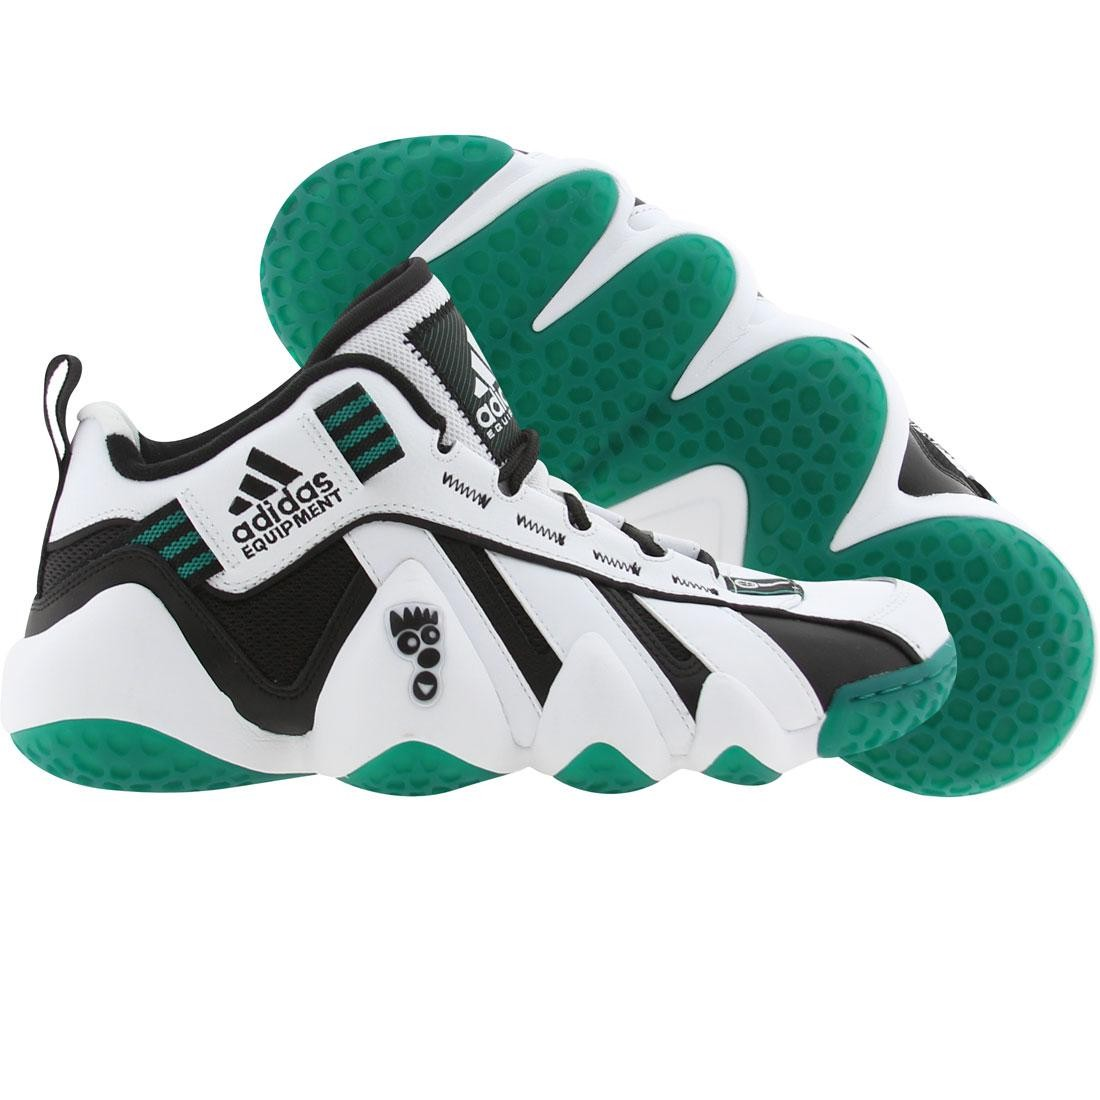 official photos 3312a e60f7 Adidas Men EQT Key Trainer - Keyshawn Johnson (black / runninwhite / subgrn)